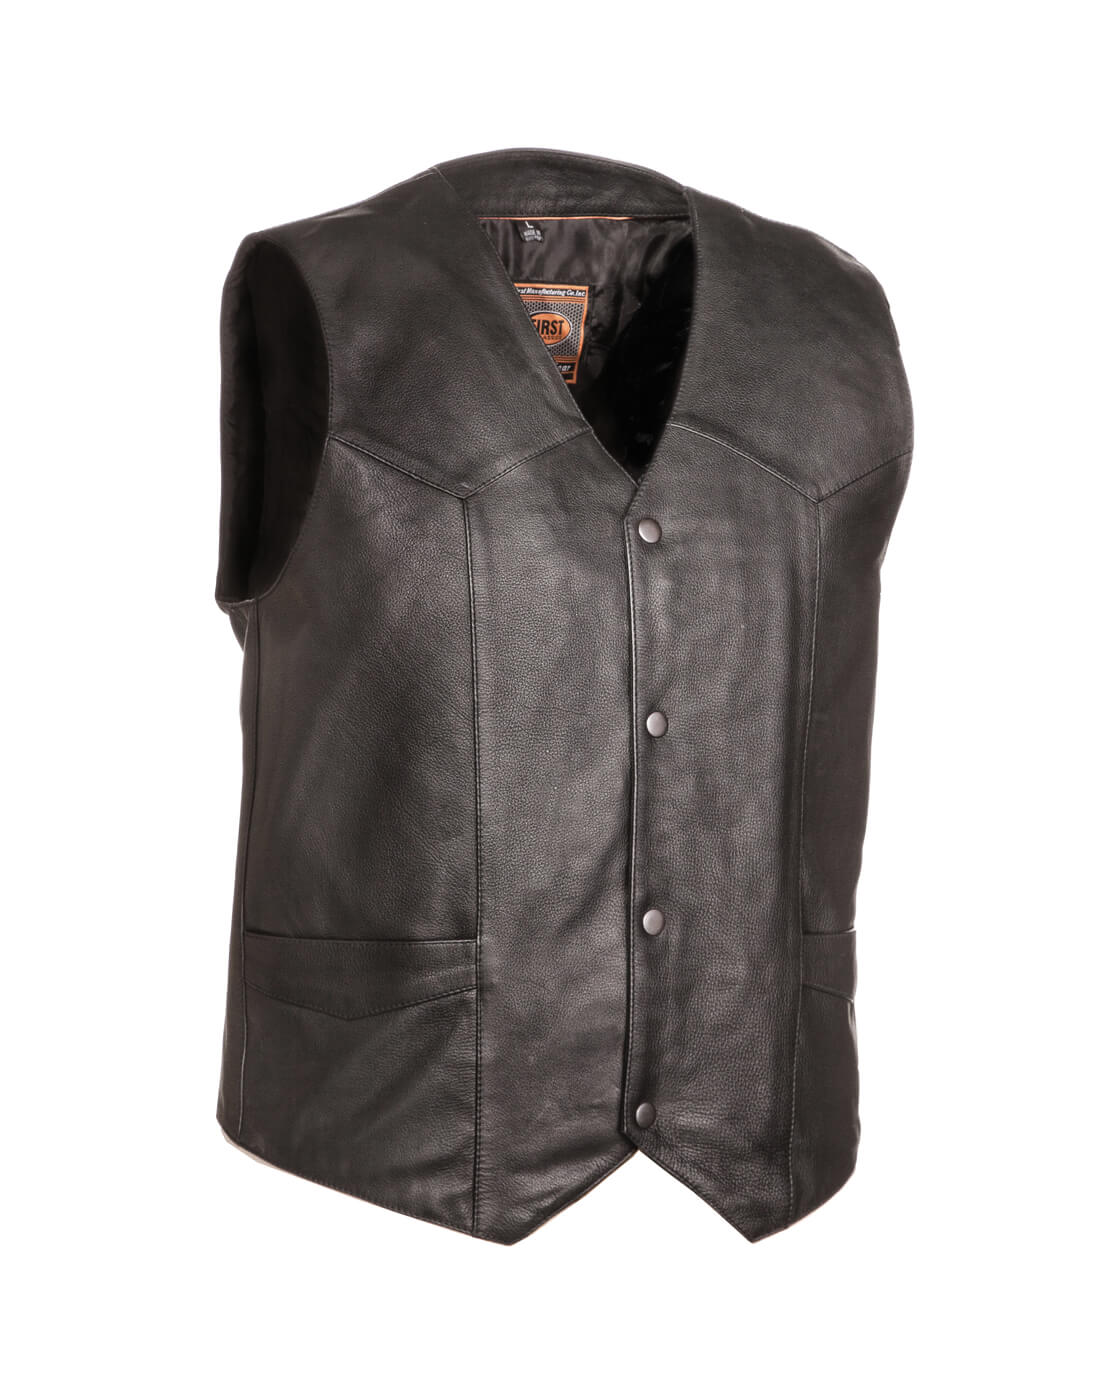 The Texan Vest by First Mfg